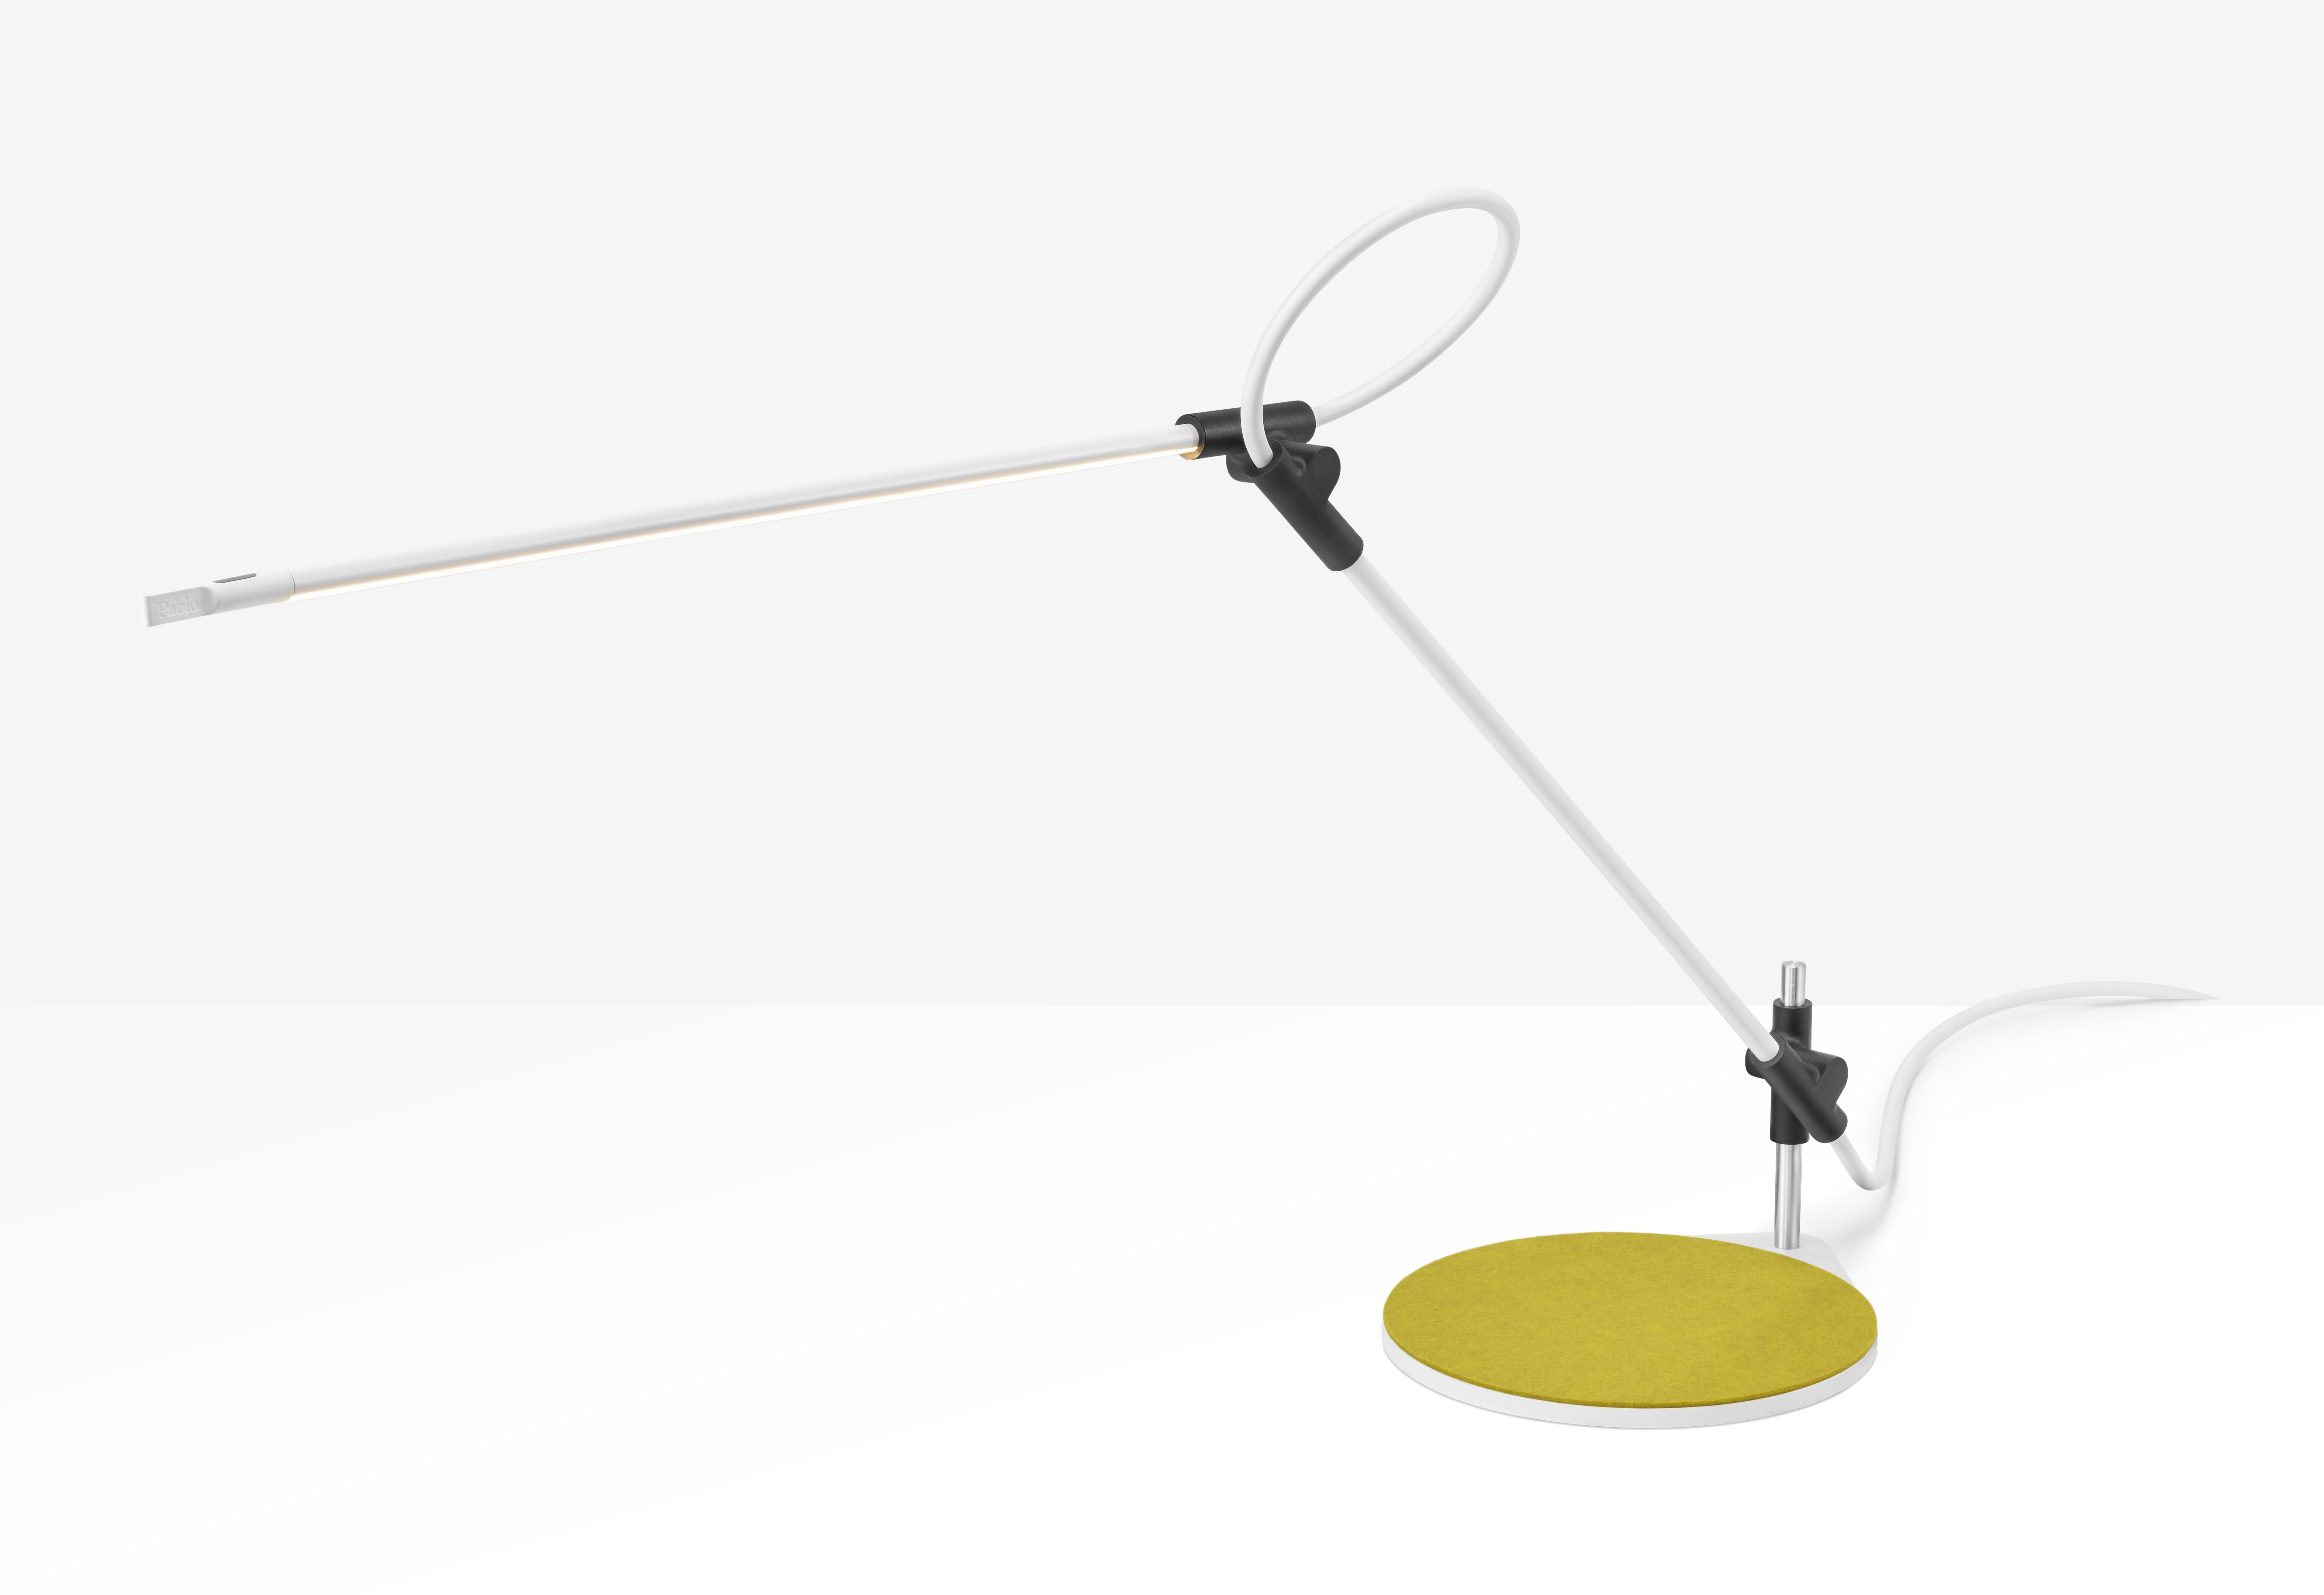 desk lamp with three-axis range of motion